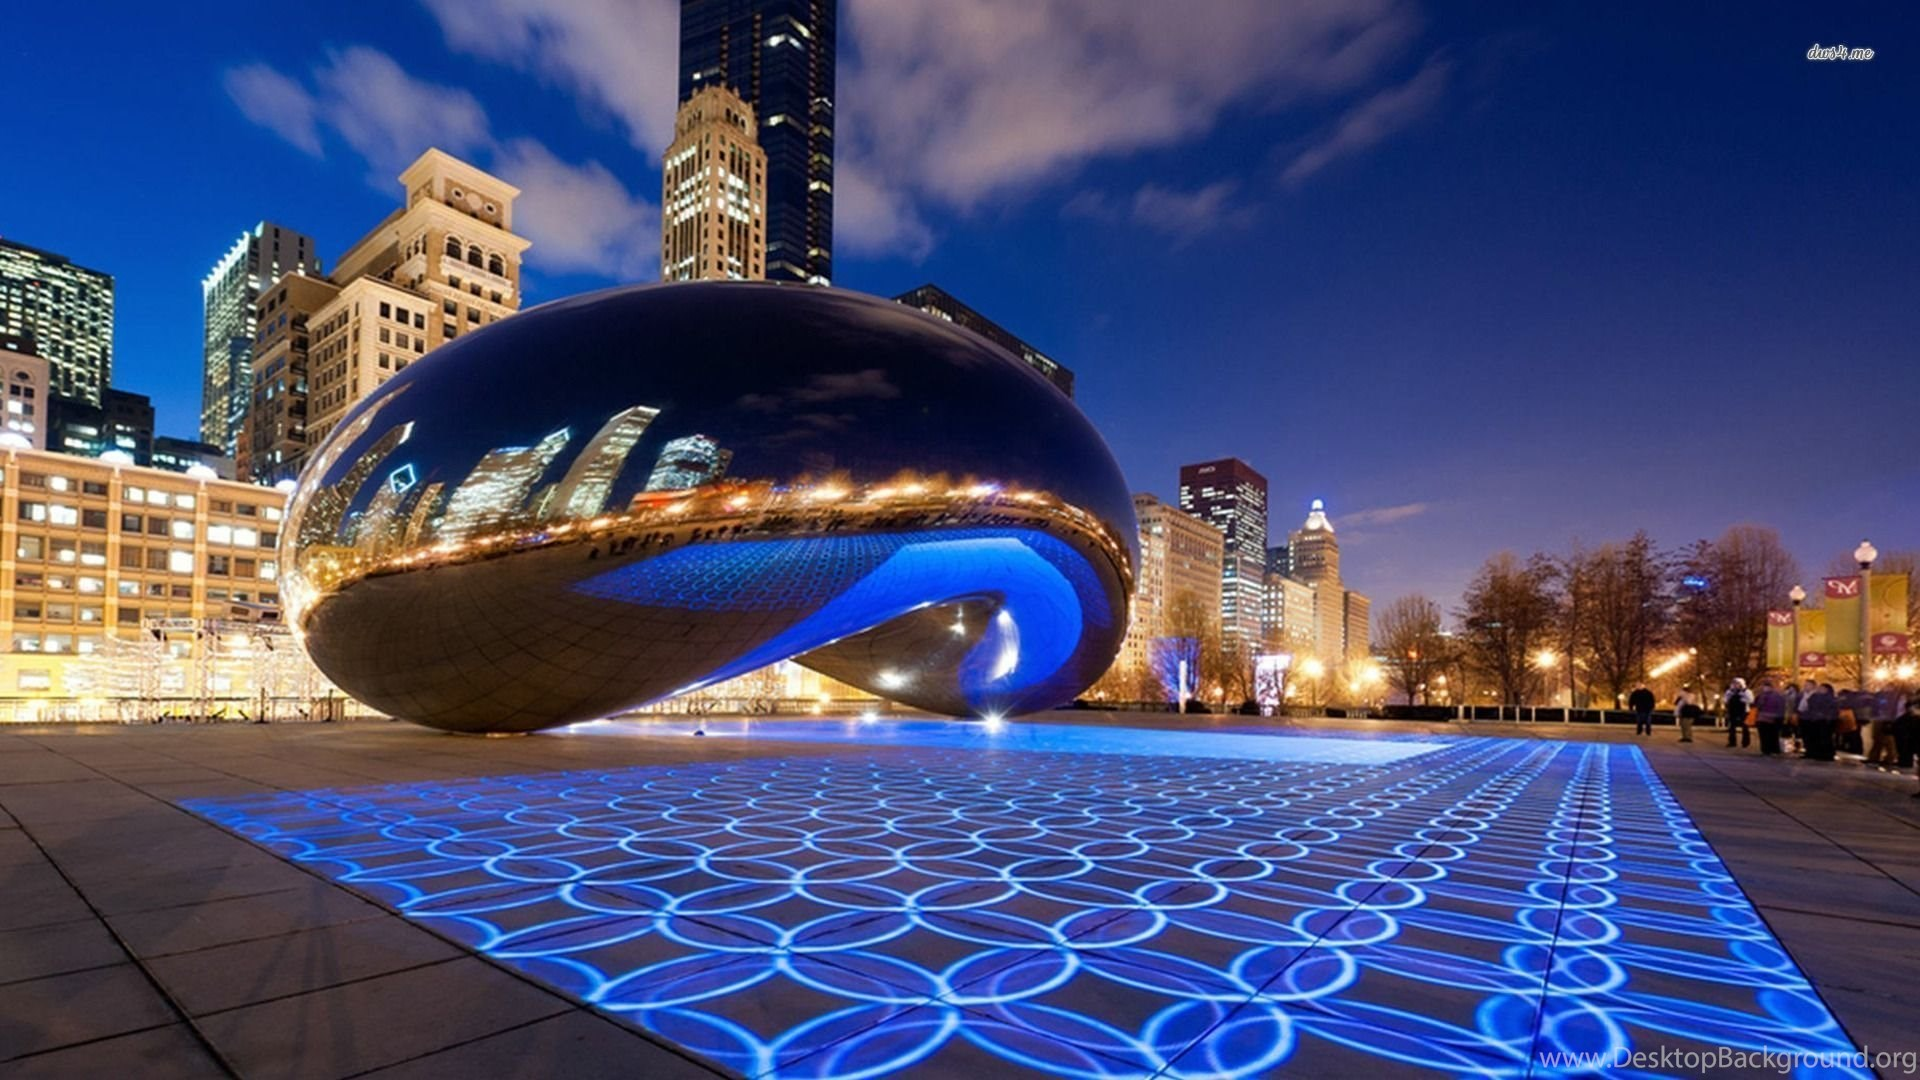 Hd Quality Chicago Cool Wallpapers Hd Siwallpapers 25433 Desktop Background